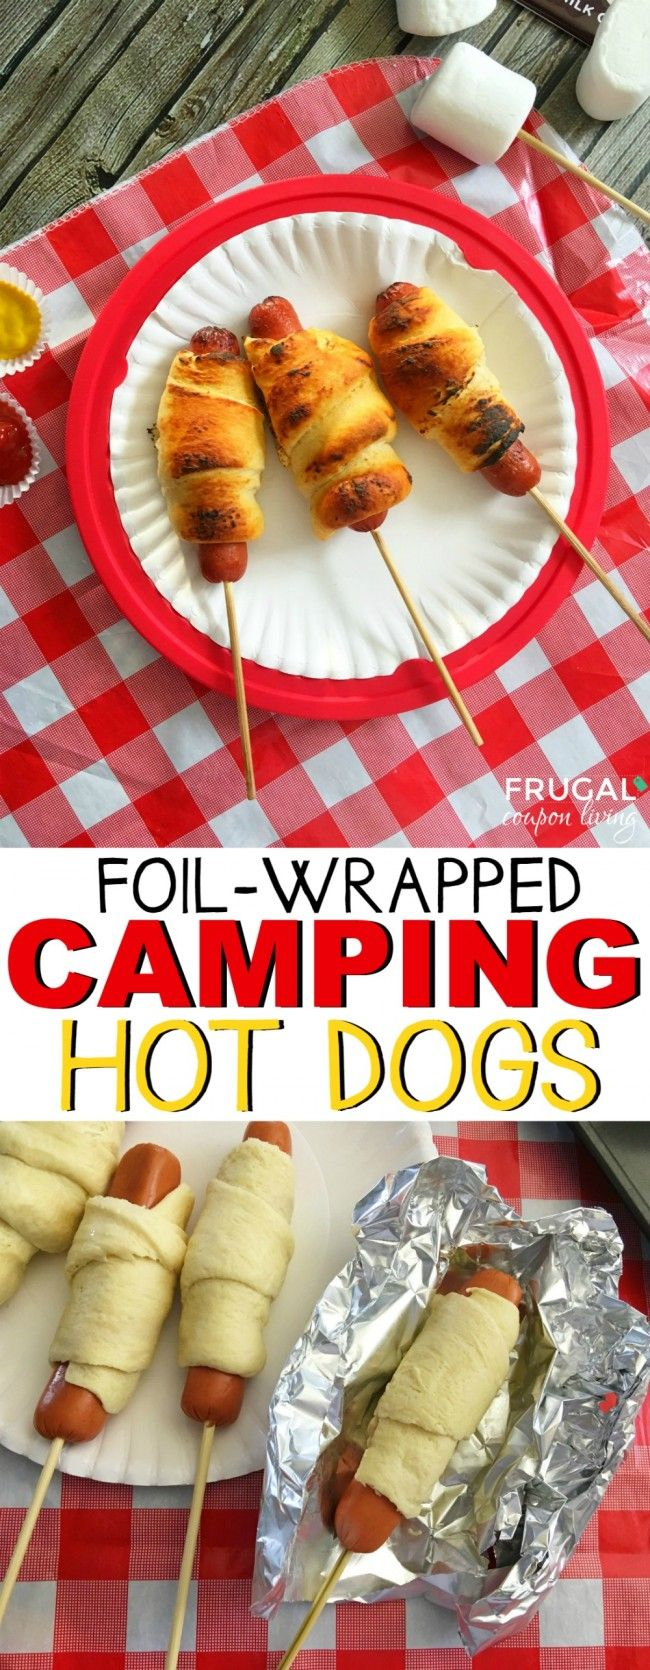 Foil wrapped hot dog recipe and The 11 Best Camping Recipes